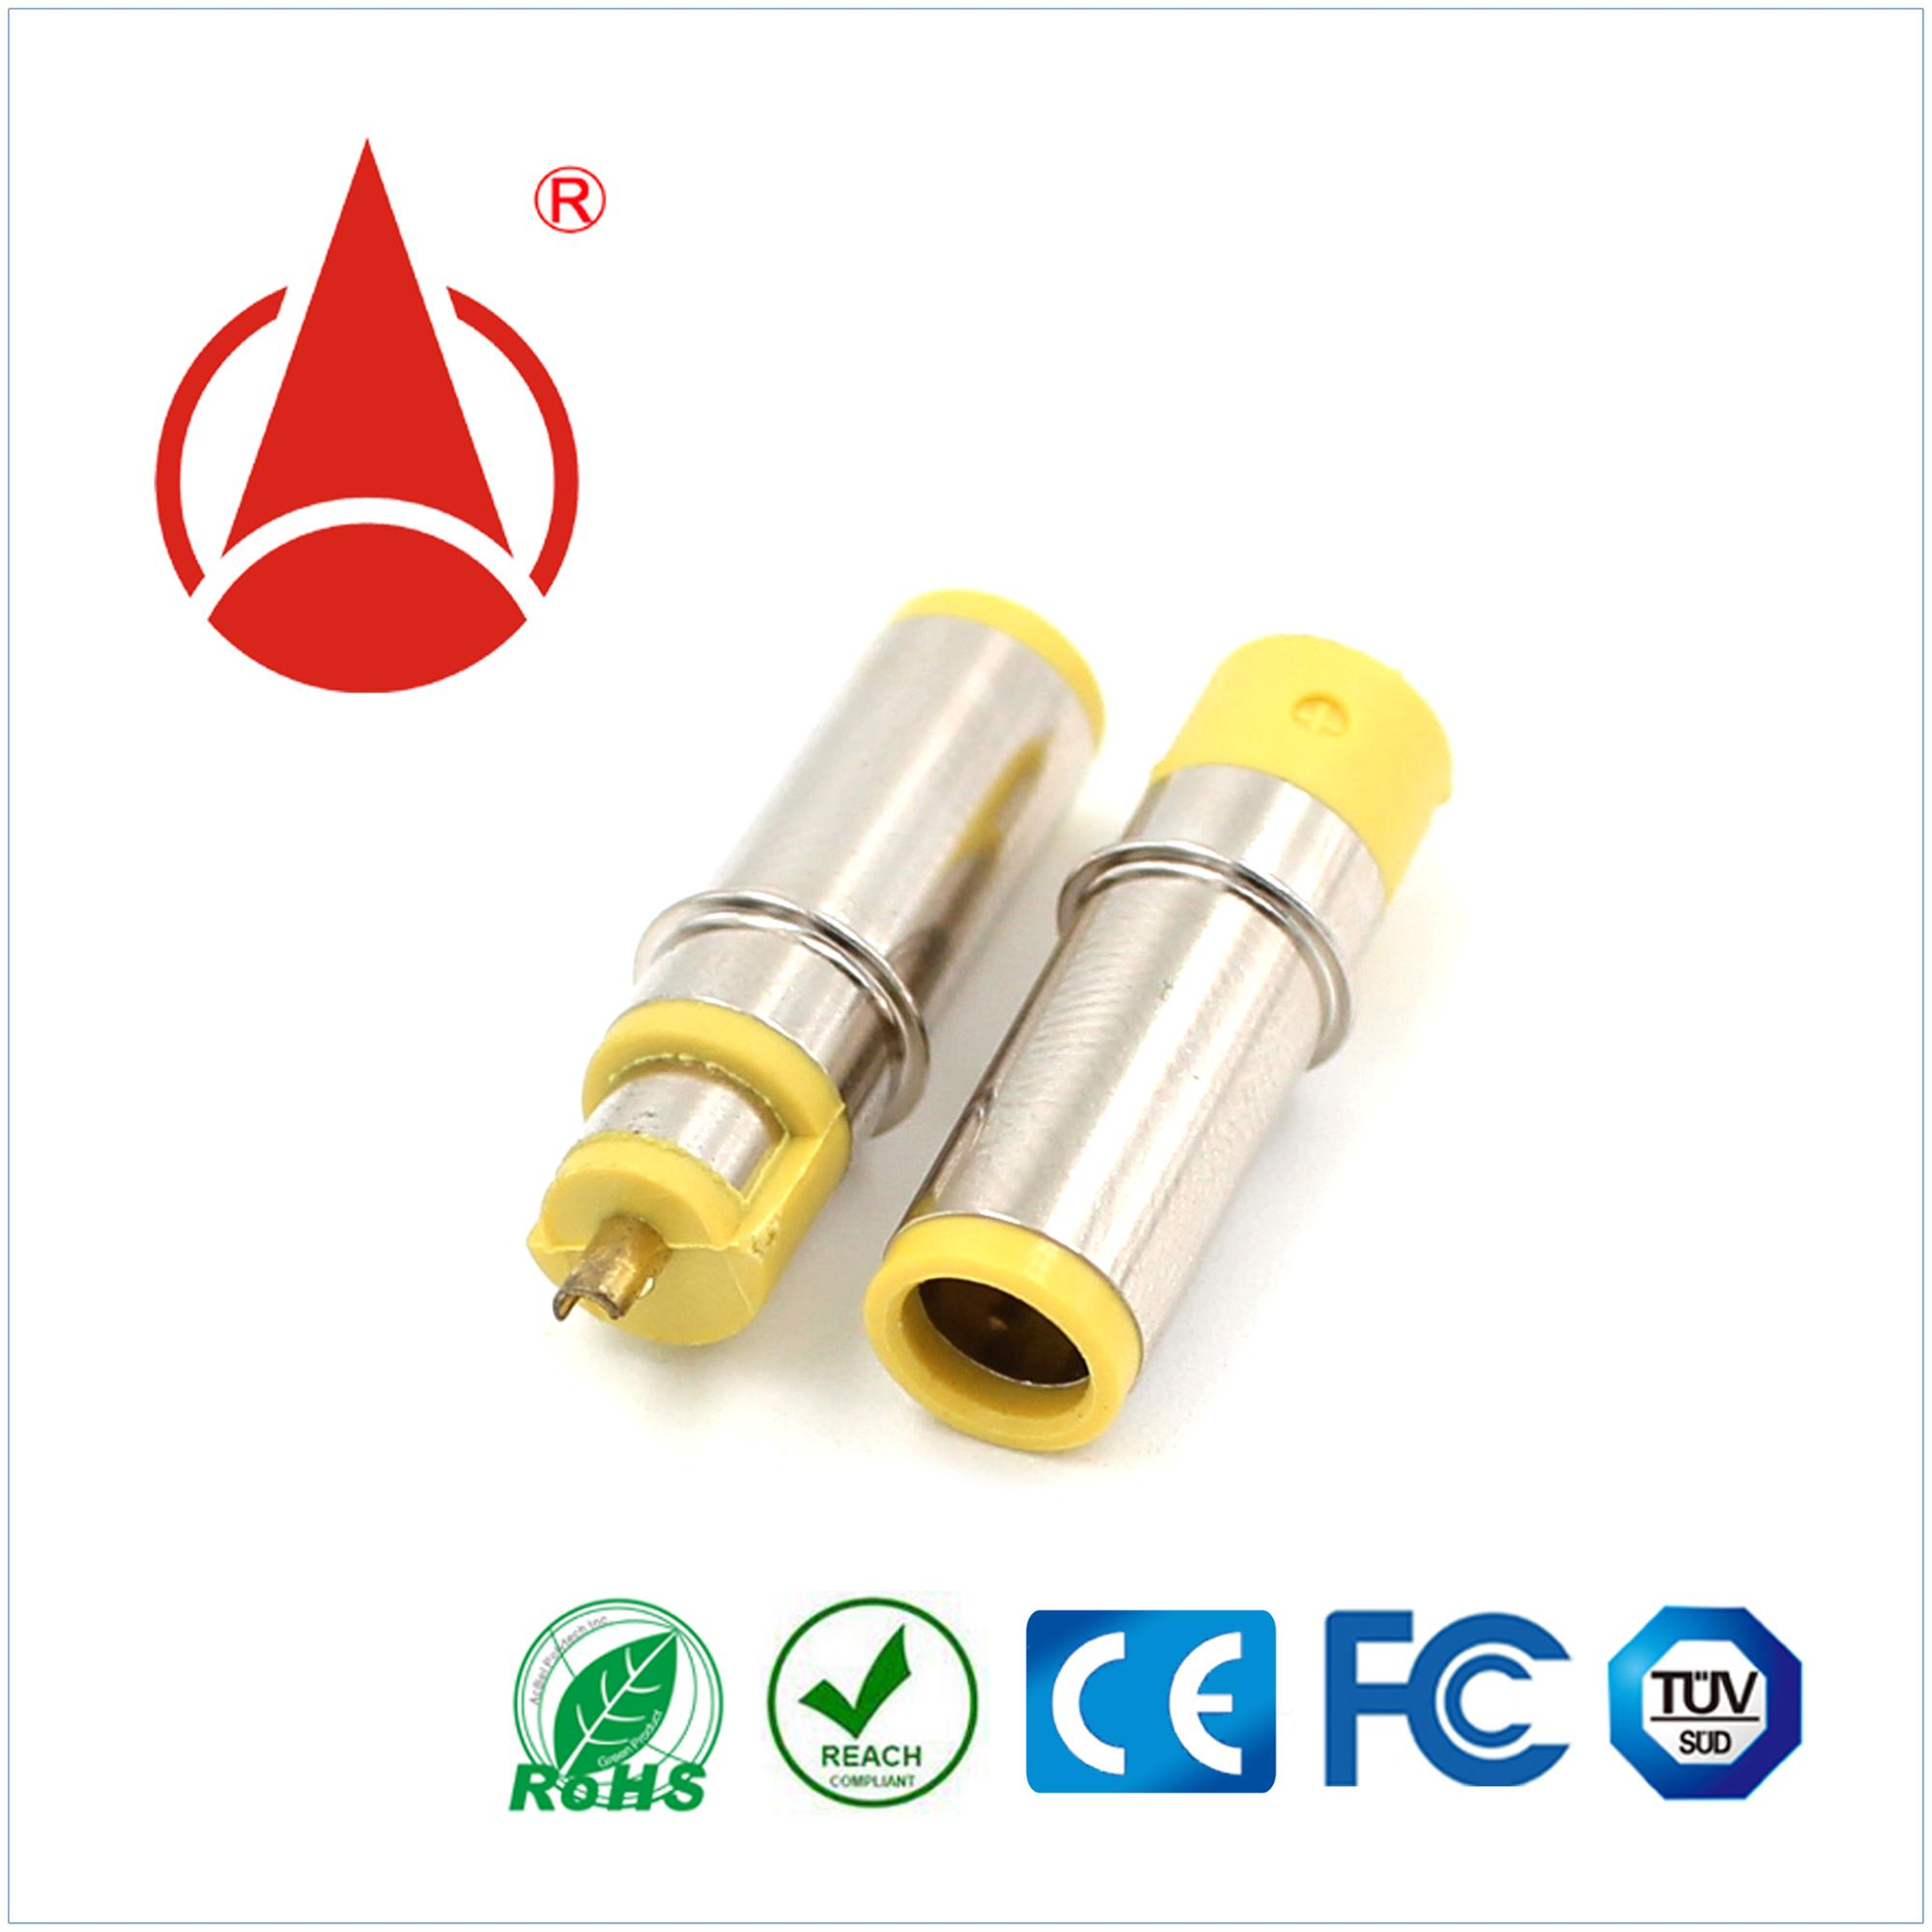 7,4mm x 5,0mm dc power stecker